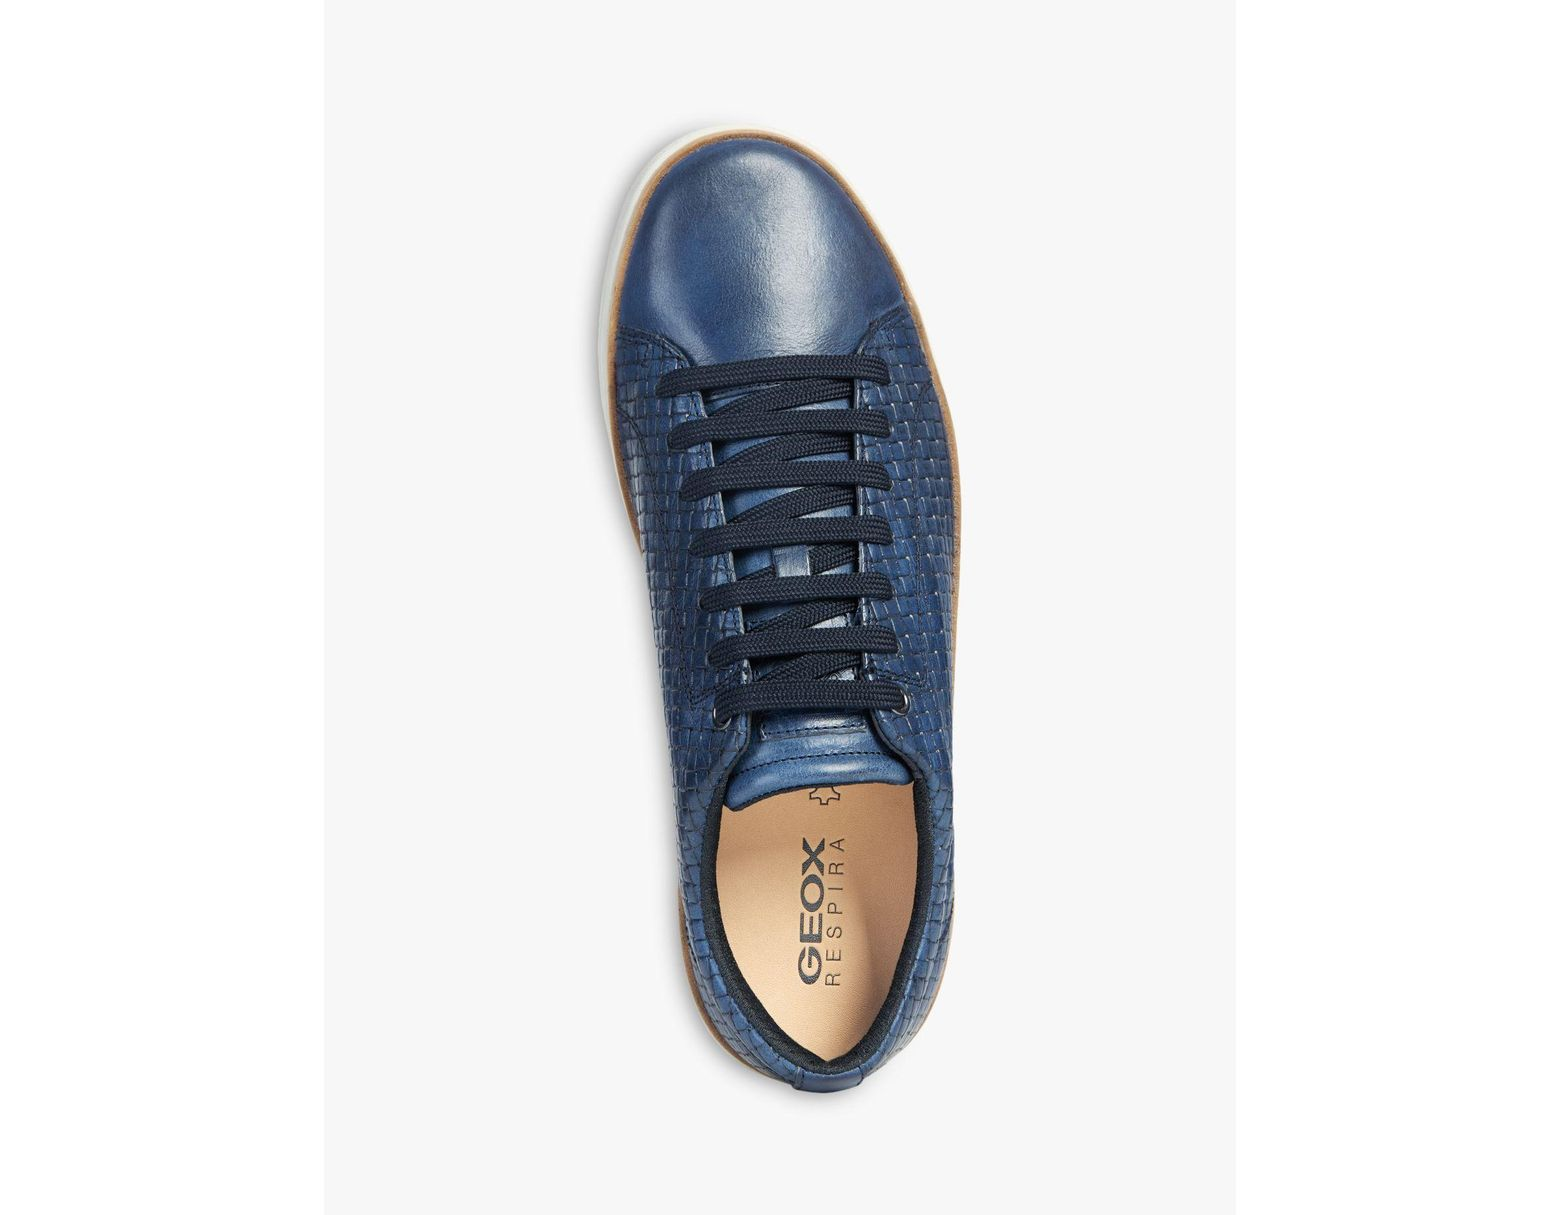 d425f008e0b Geox Ariam Tile Leather Trainers in Blue for Men - Lyst